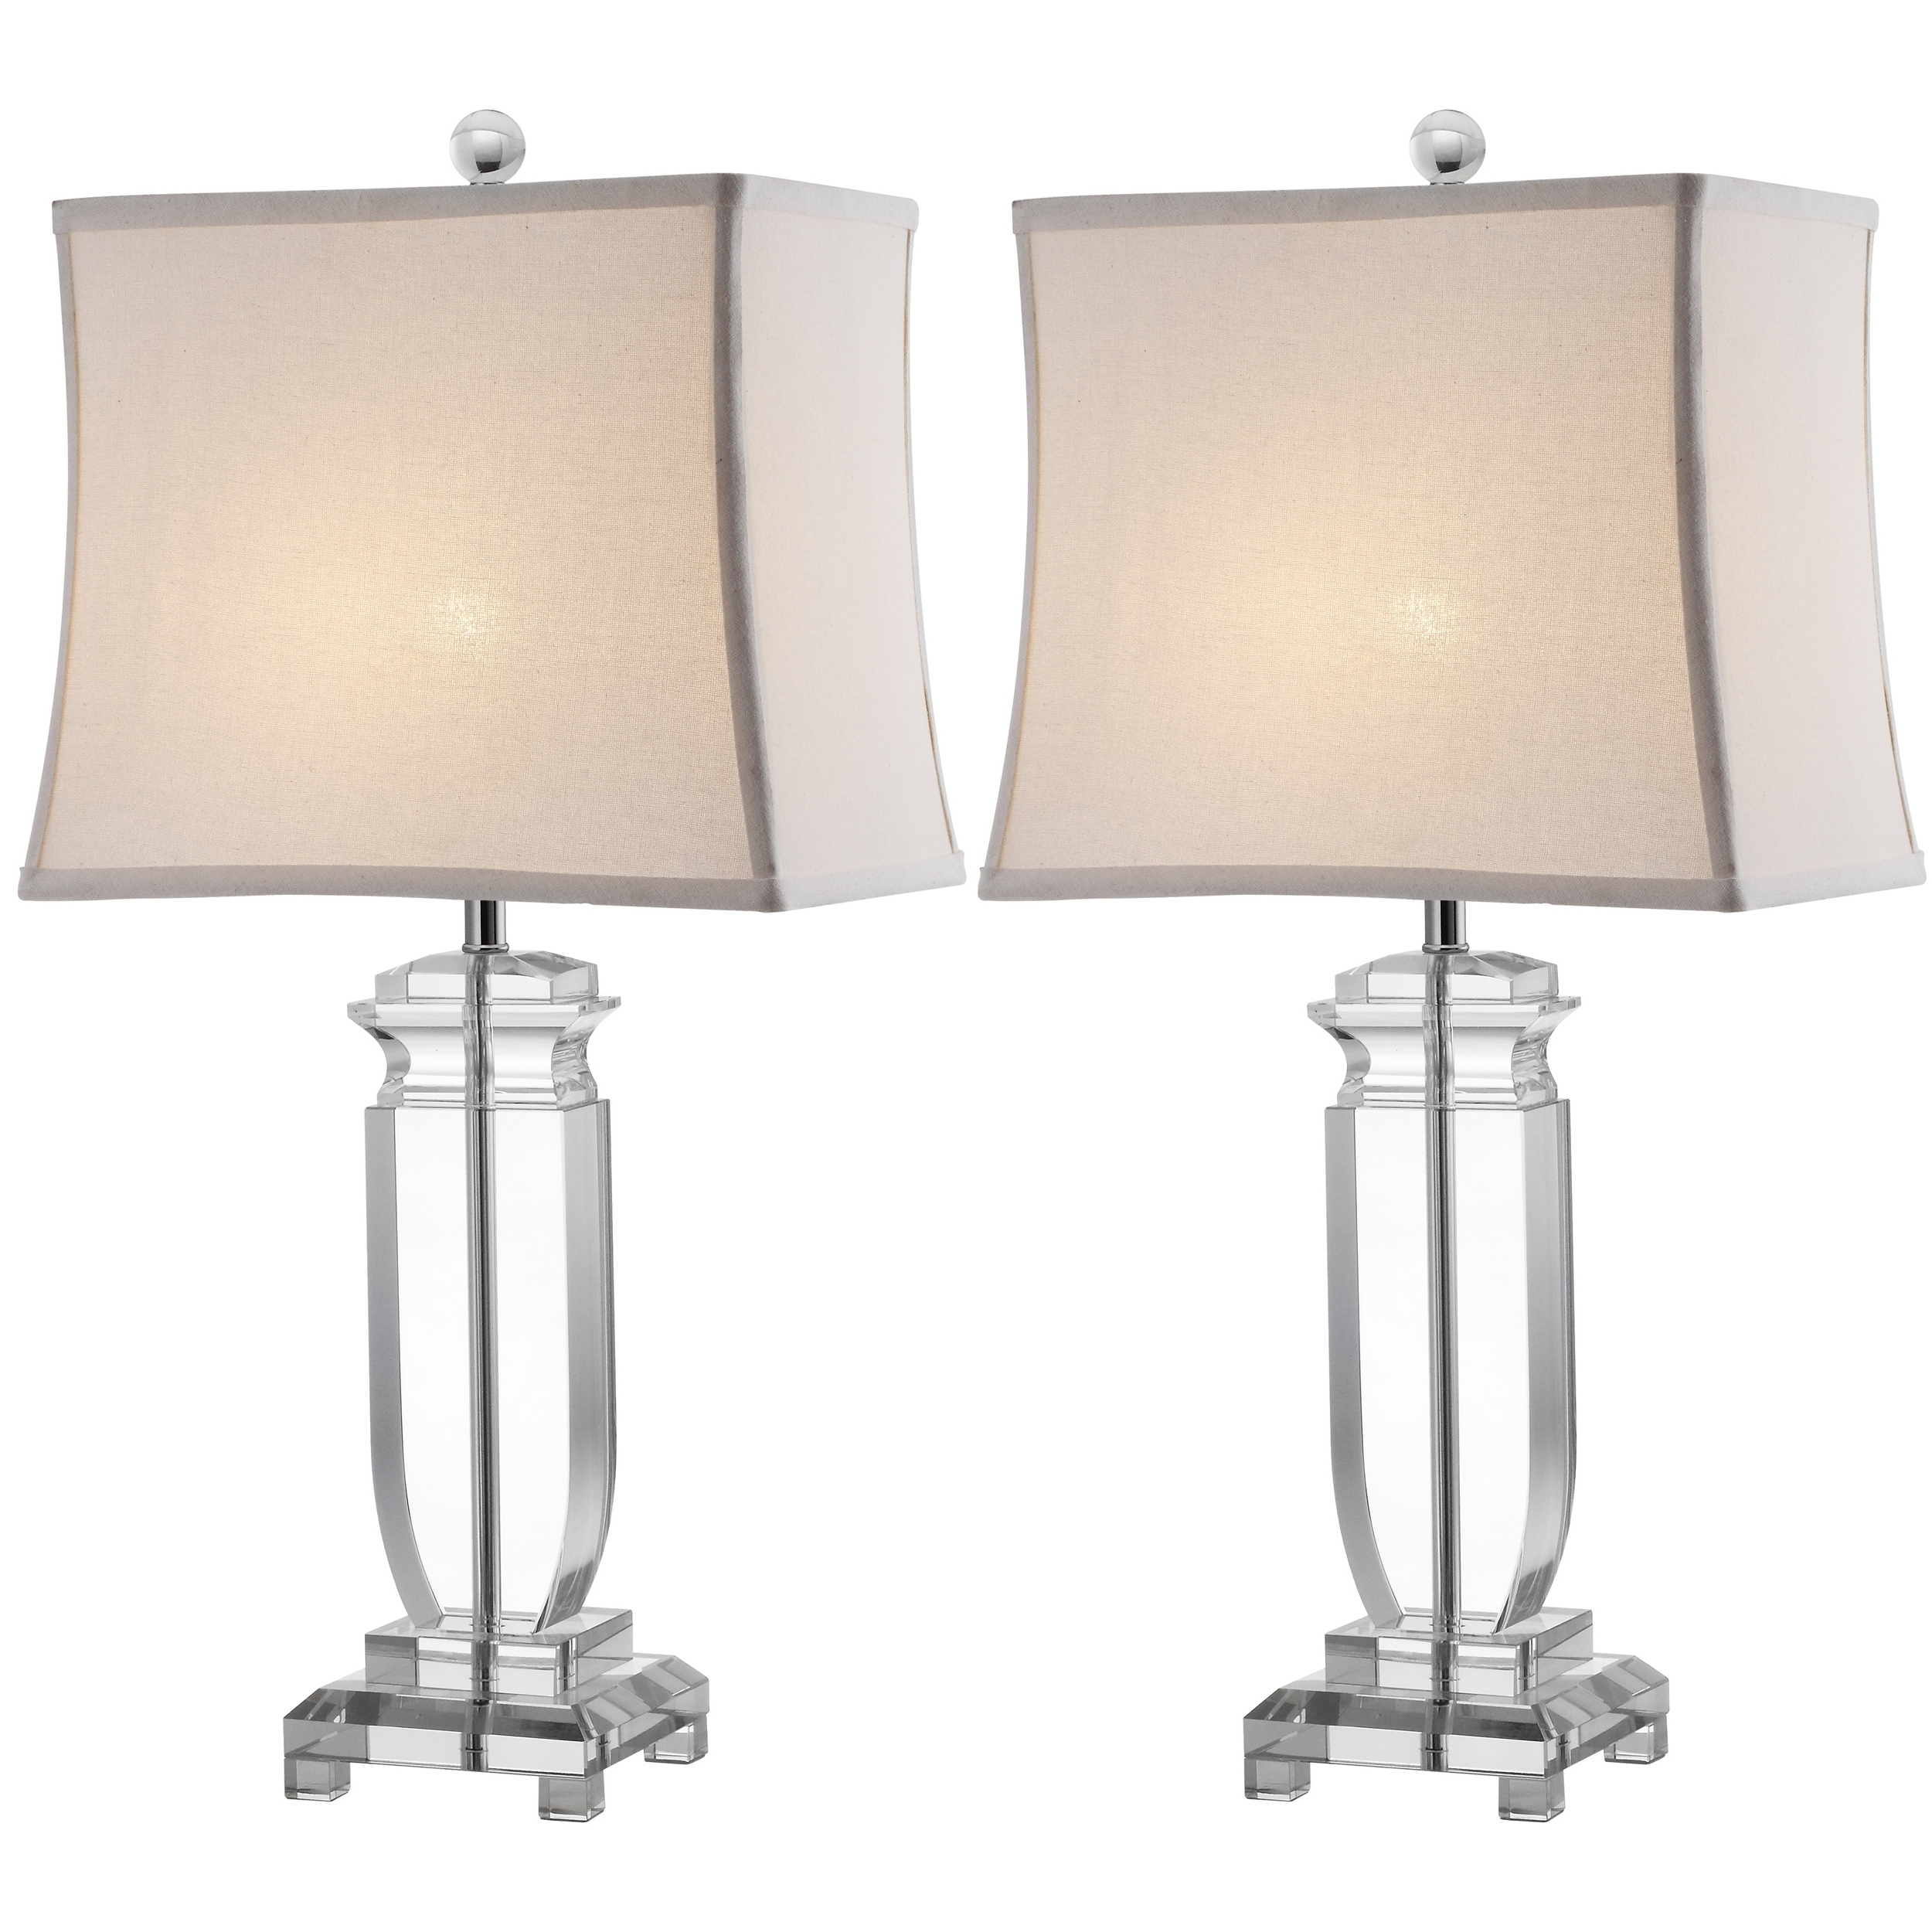 Widely Used Crystal Table Lamps For Living Room – Home Maximize Ideas With Crystal Living Room Table Lamps (View 12 of 20)